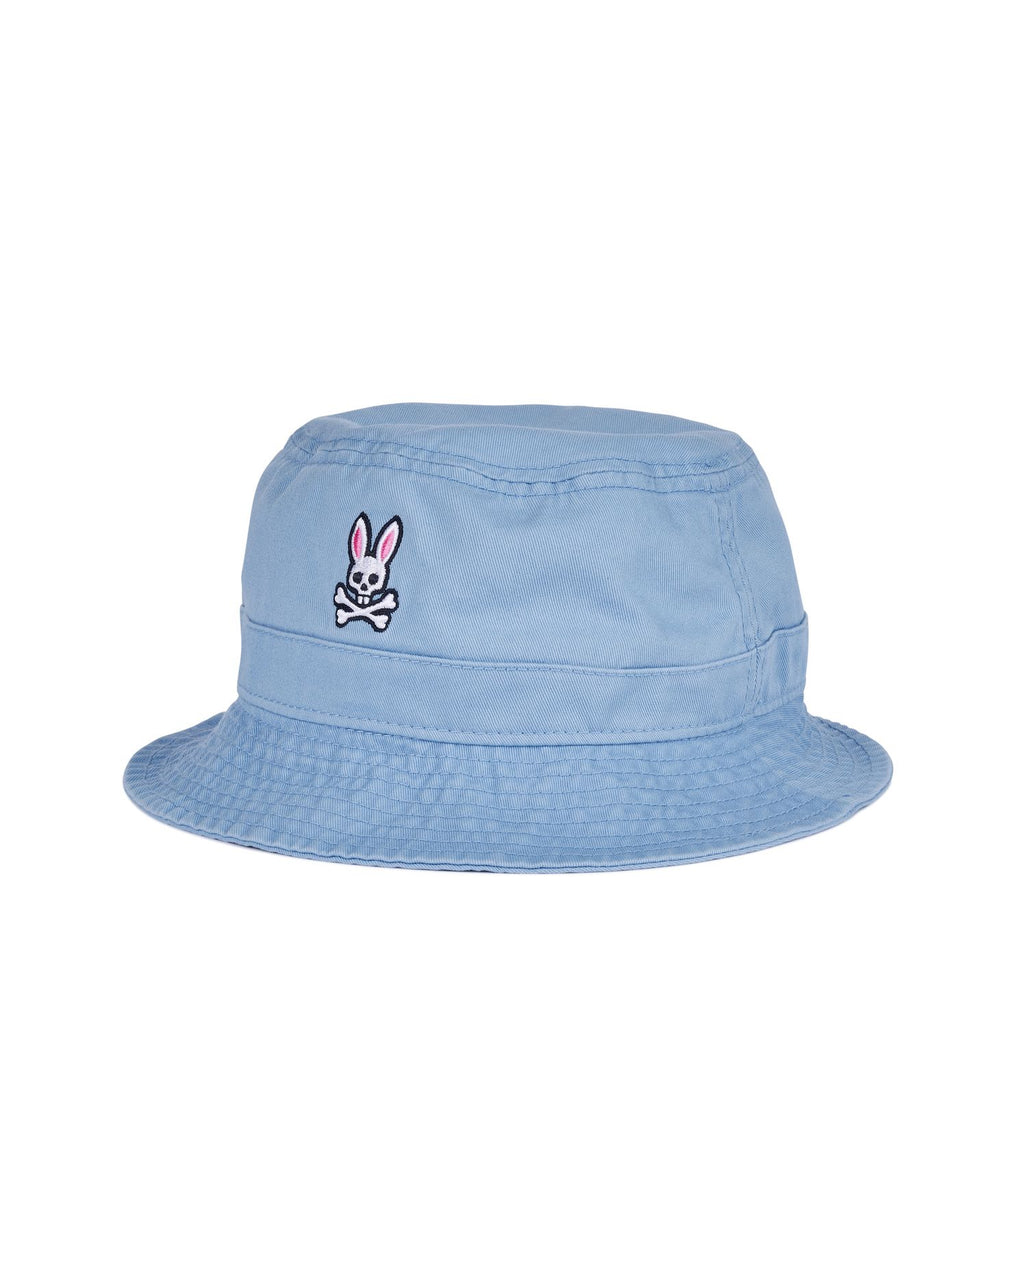 Psycho Bunny Men's Bucket Hat - Vast Sky